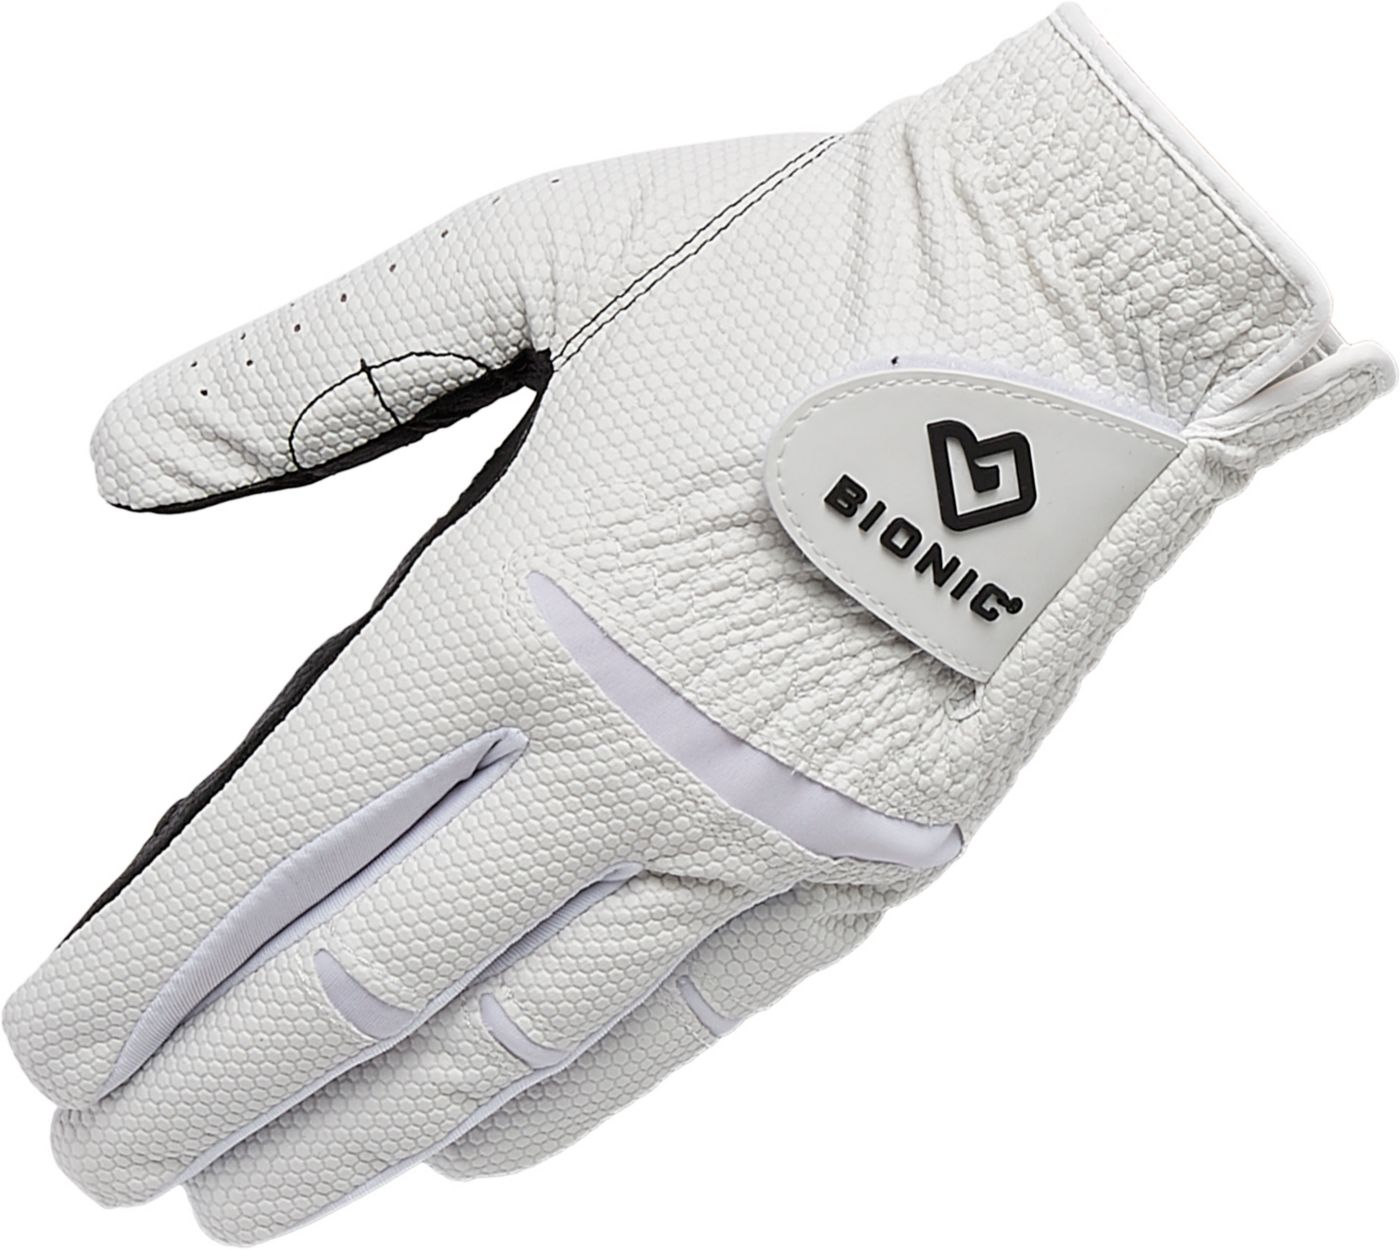 Bionic RelaxGrip 2.0 Golf Glove